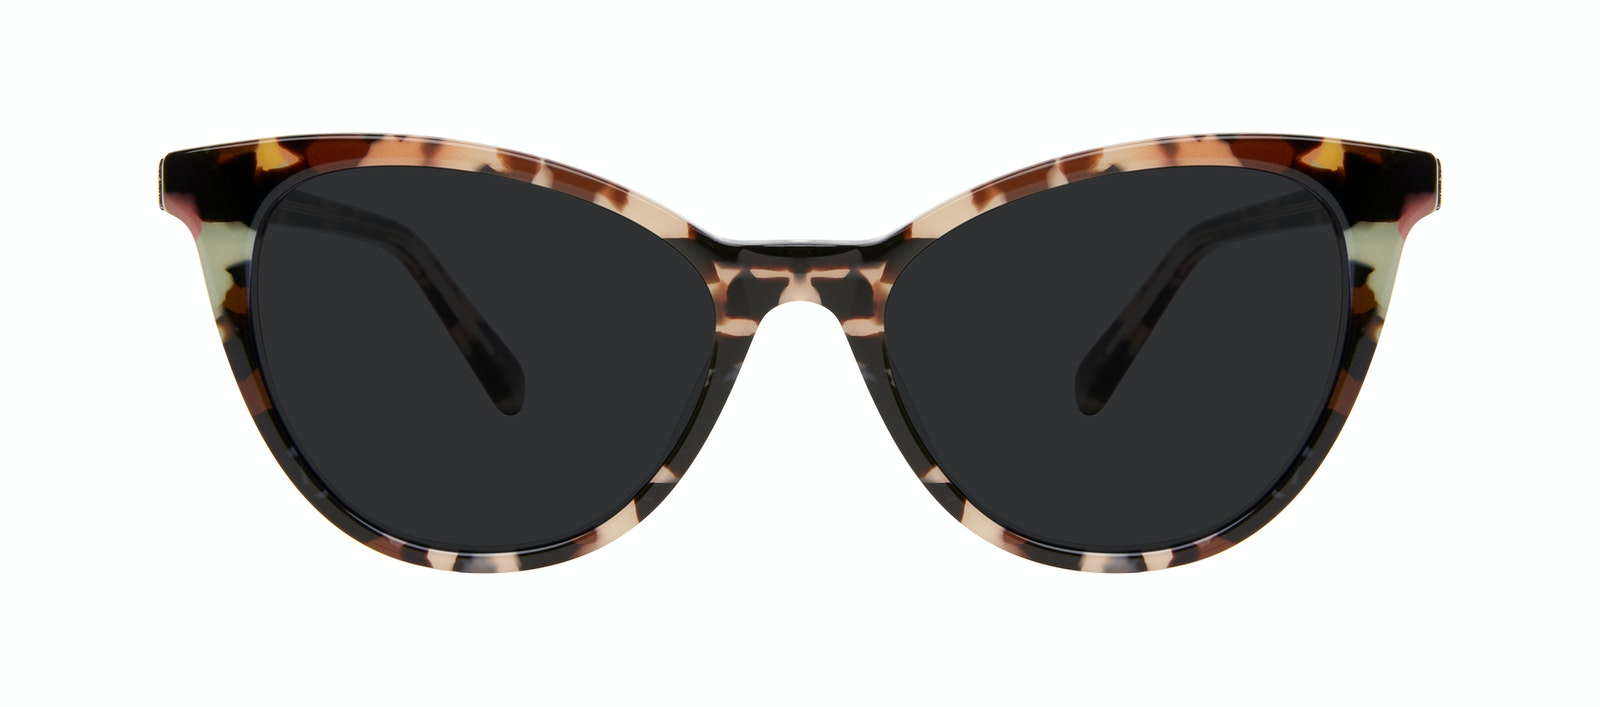 Affordable Fashion Glasses Cat Eye Sunglasses Women Victoire Pastel Tort Front